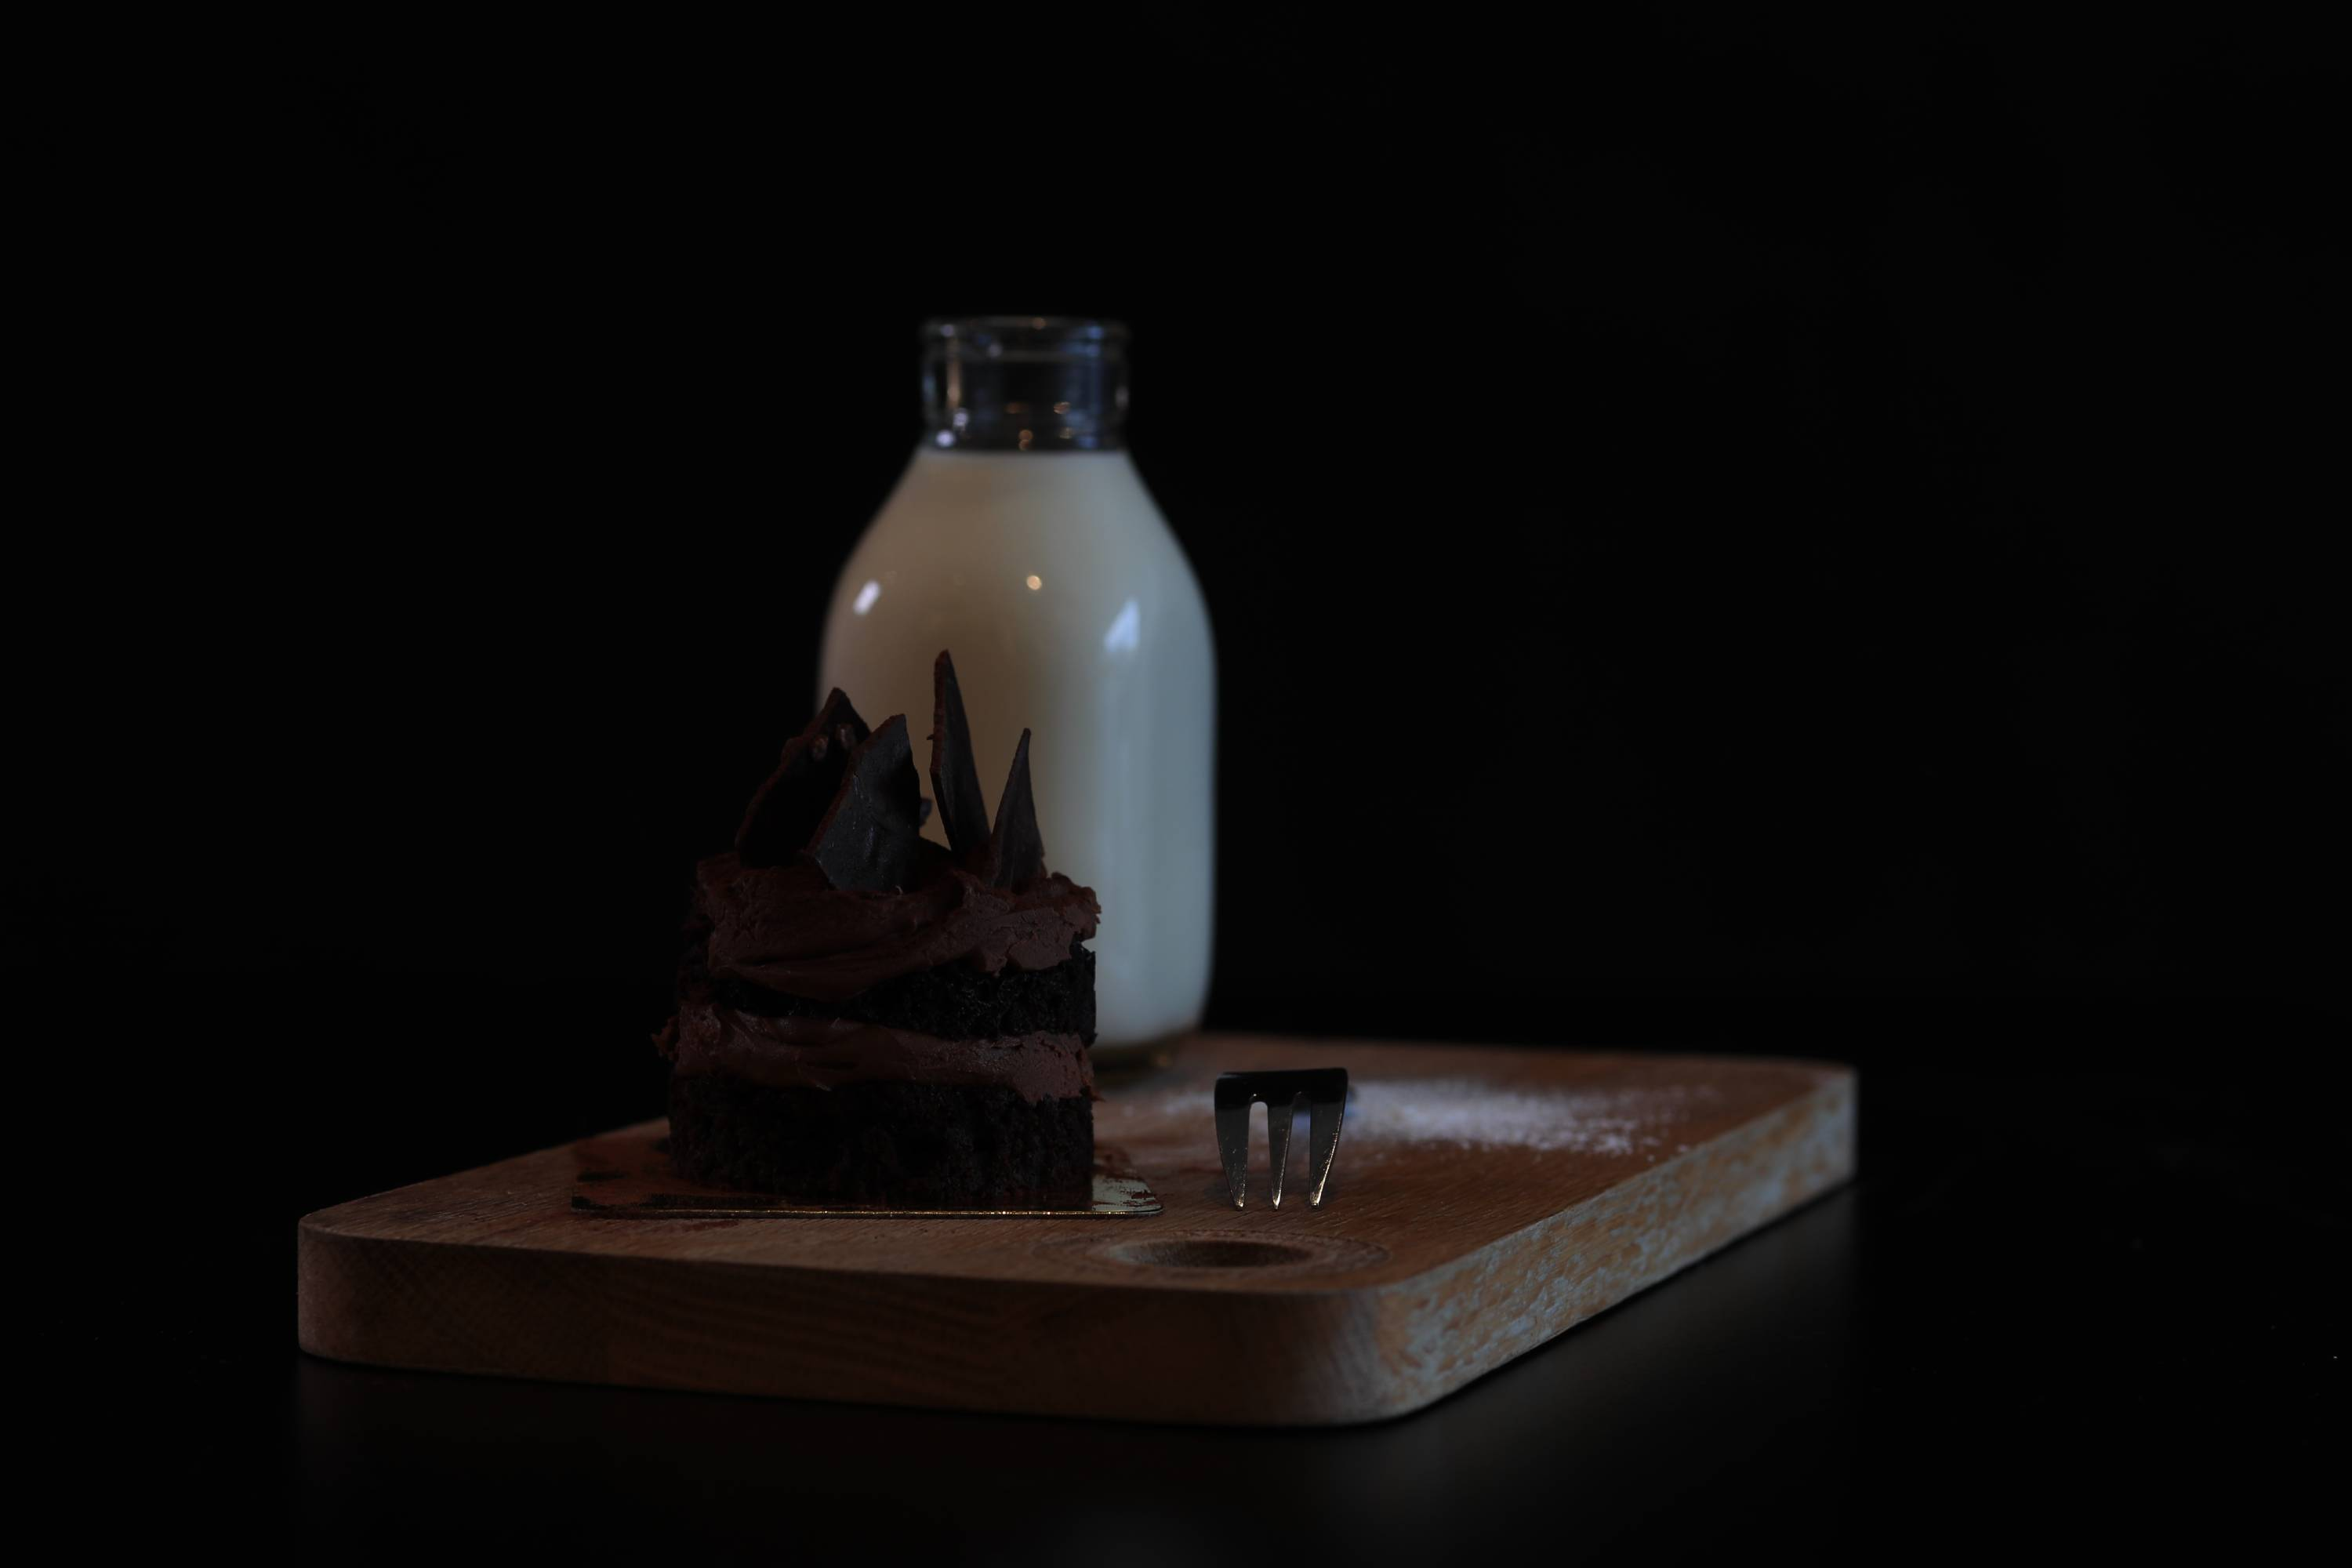 milk and chocolate cake - solving common lighting issues